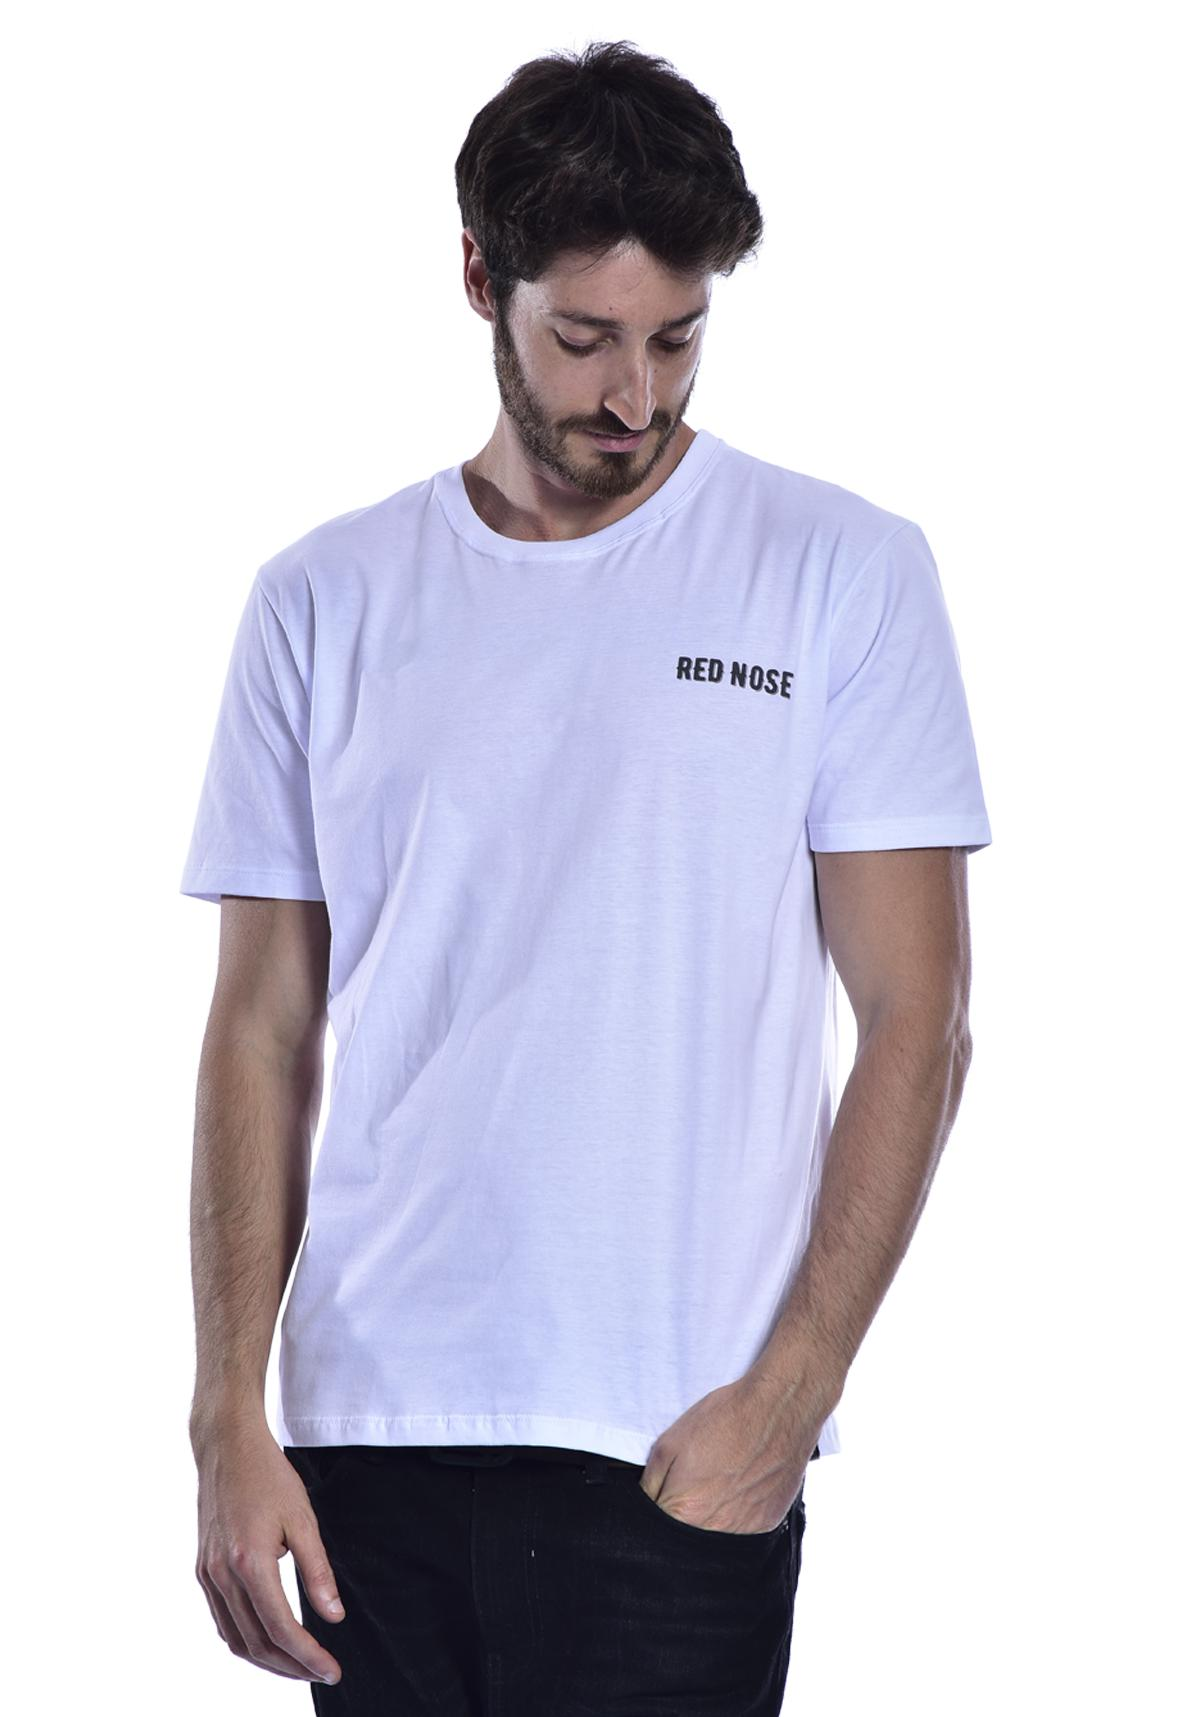 Camiseta Red Nose Caveira Surf Branca P